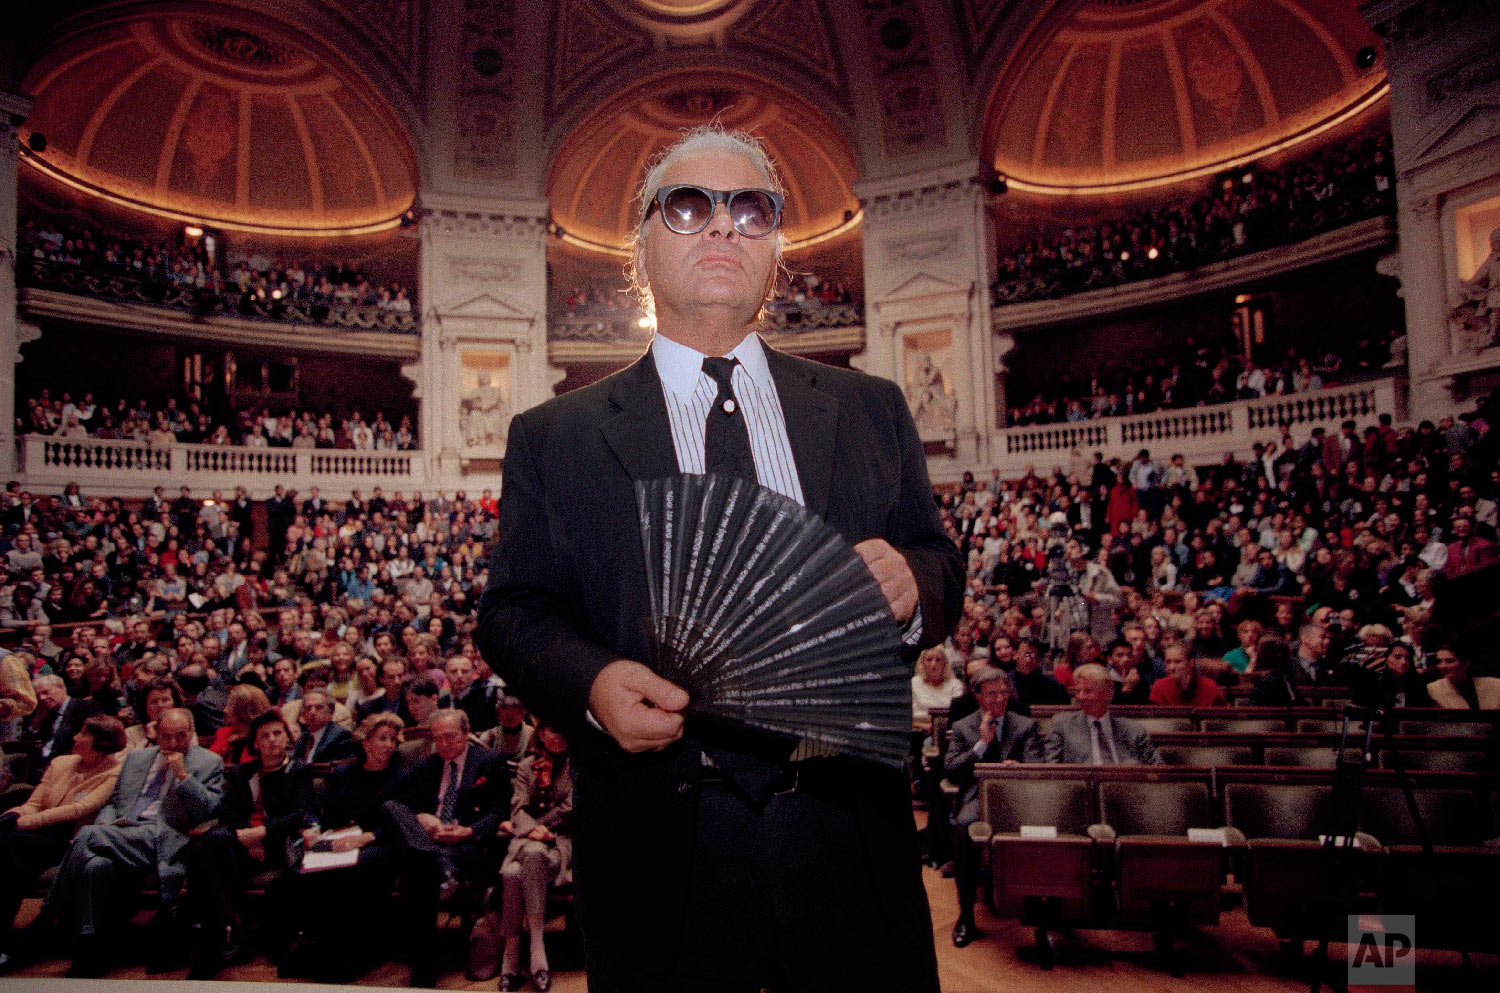 Karl Lagerfeld, the German fashion designer for Chanel, holds his fan as he enters the main auditorium at the Sorbonne, the oldest and most famous university in France, Oct. 18, 1994. (AP Photo/Lionel Cironneau)